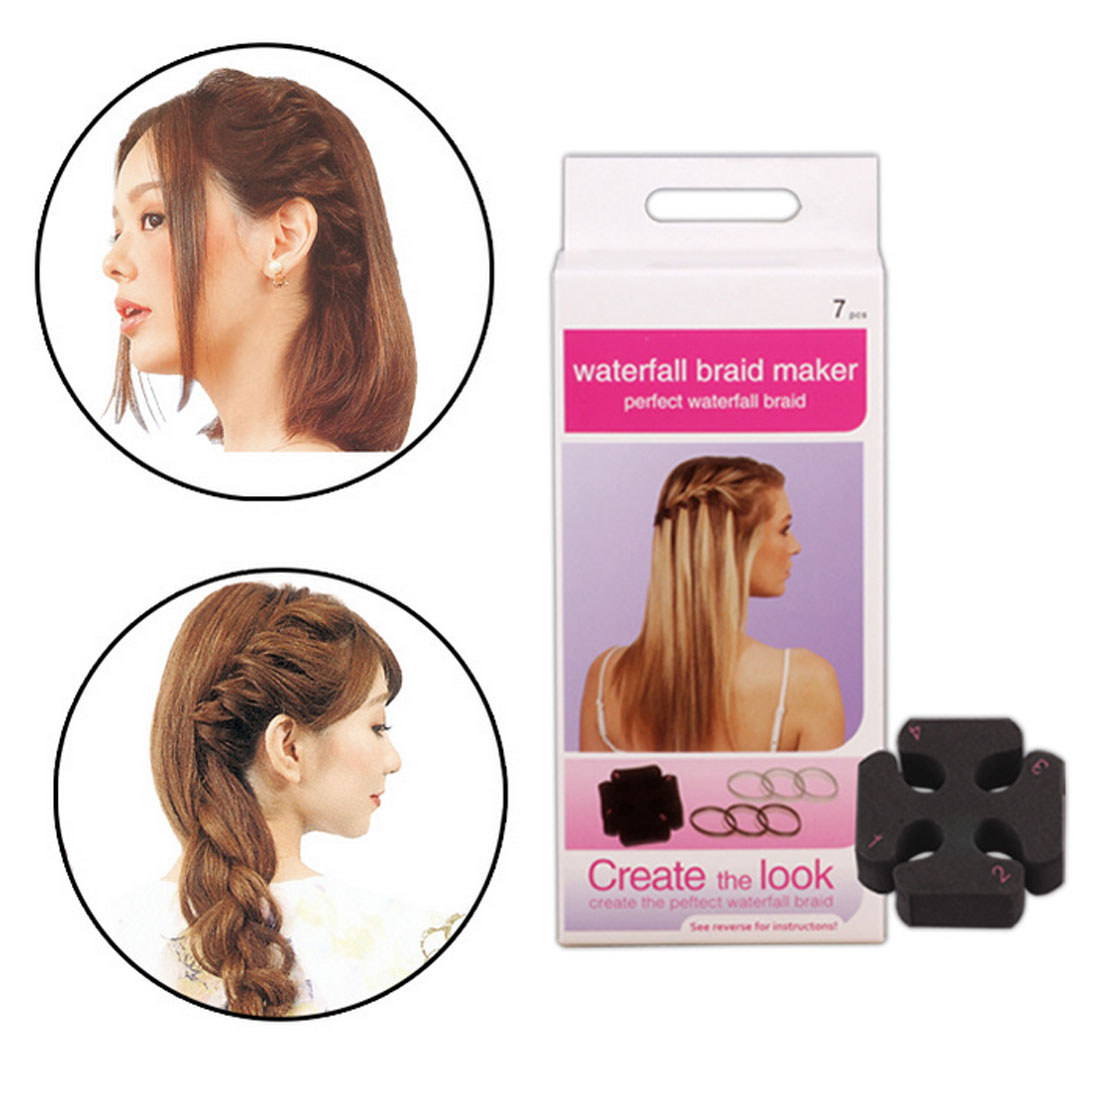 DIY Fast Hair Styling Waterfall Head Twist Styling Hairs Styling Tool Pro Sponge Braider for Home Salon Quick Use